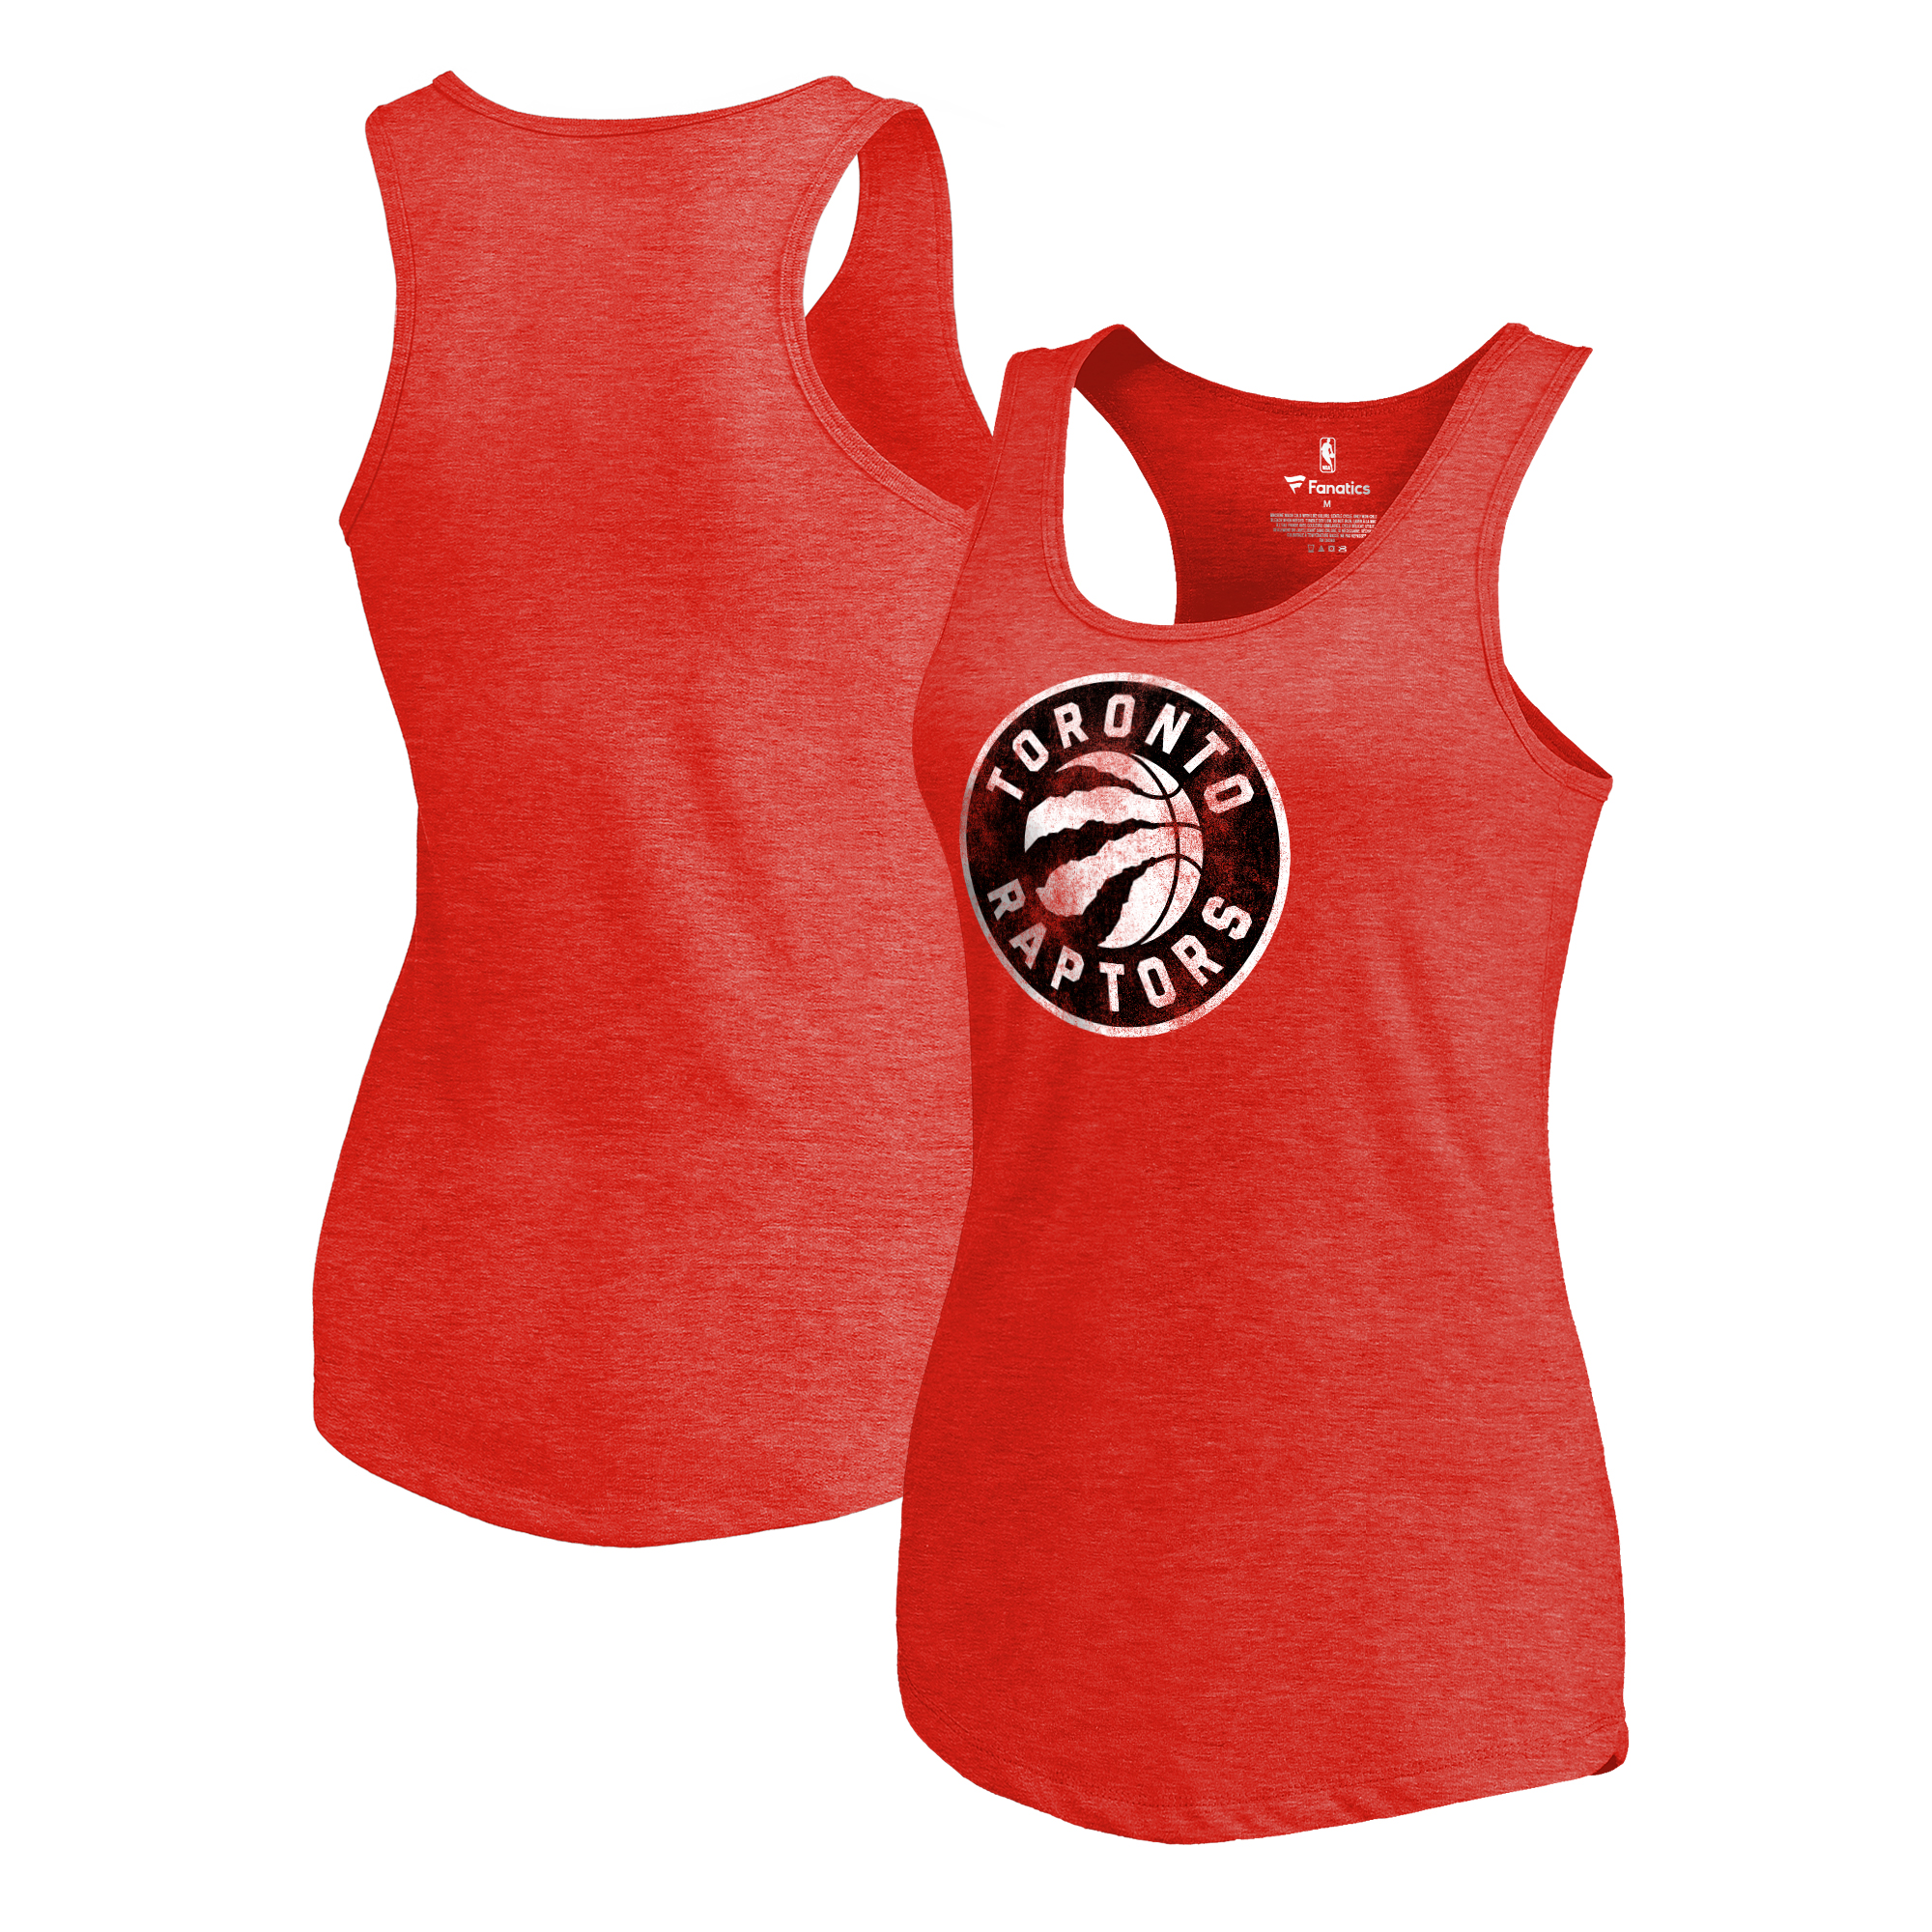 Toronto Raptors Fanatics Branded Women's Distressed Logo Tri-Blend Racerback Tank Top - Red